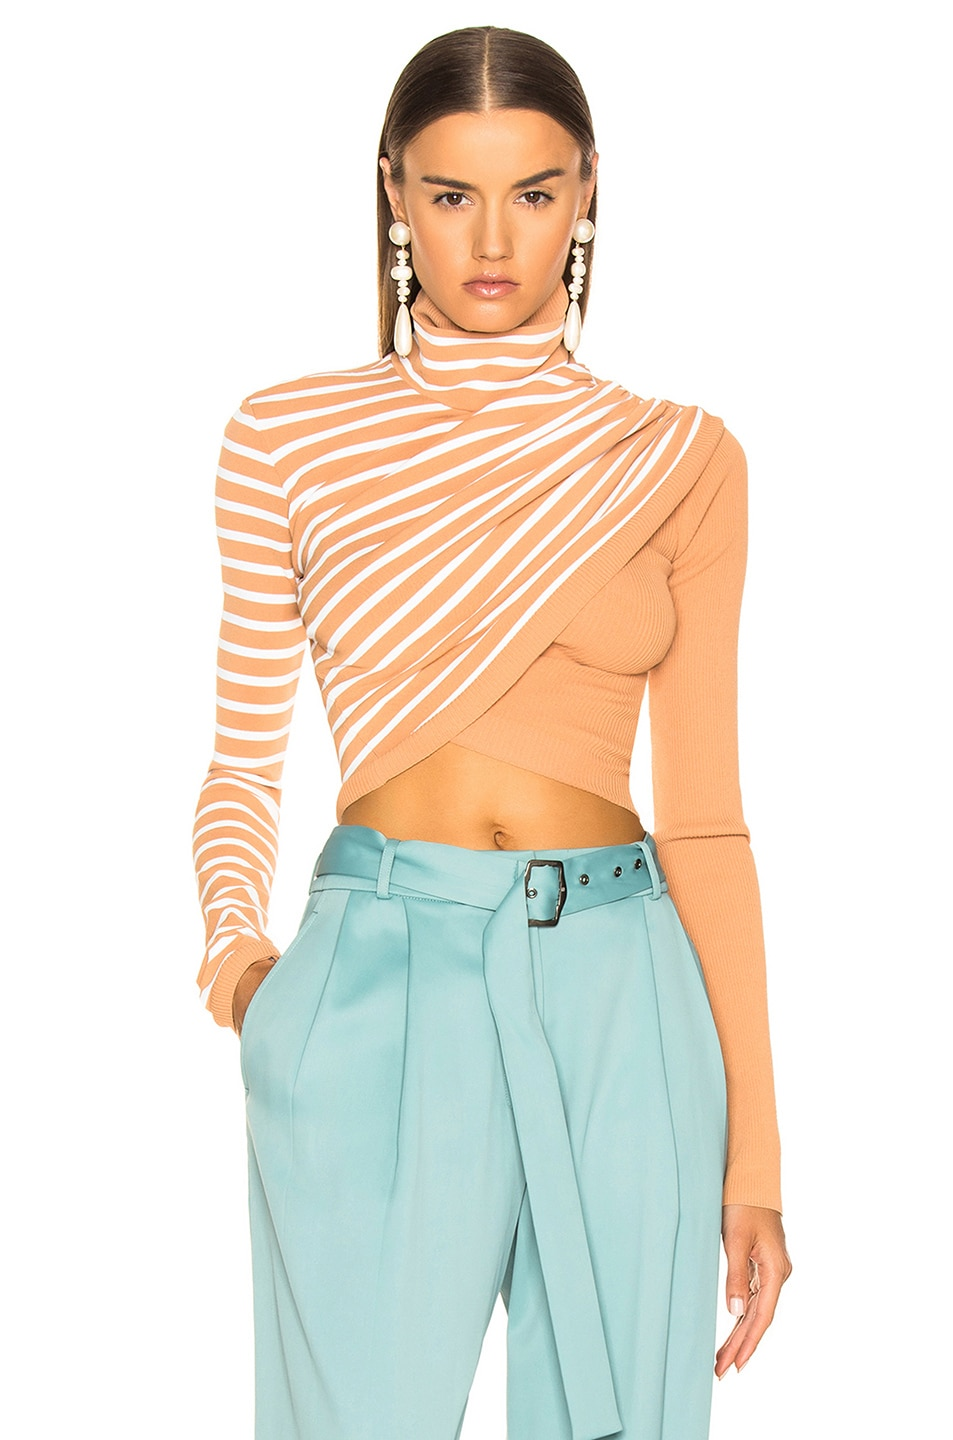 Image 1 of Sies Marjan Jenn Wrap Crop Turtleneck Sweater in Cinnamon & Salt Stripe